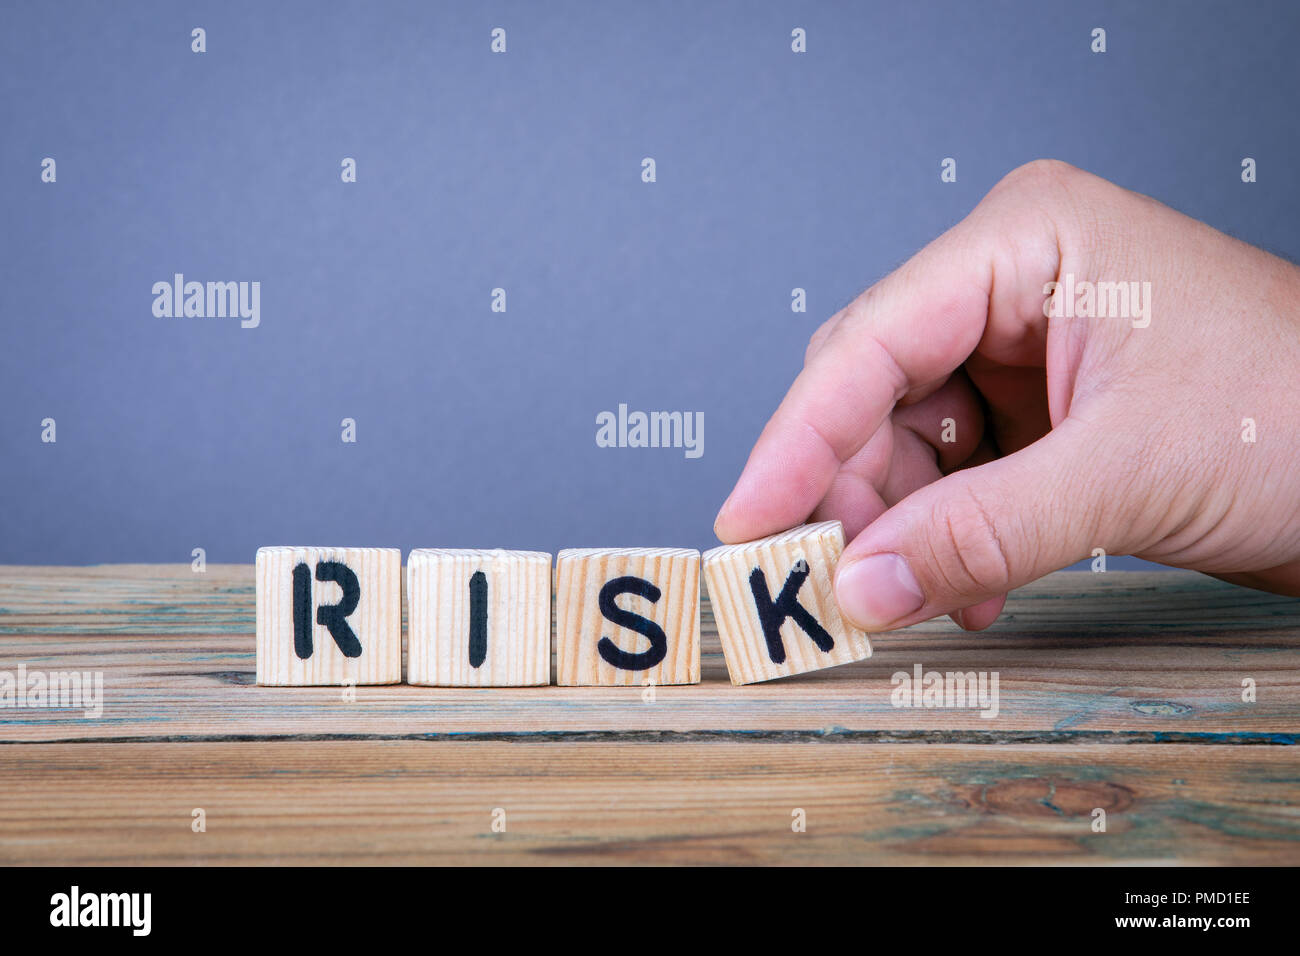 risk. Wooden letters on the office desk - Stock Image